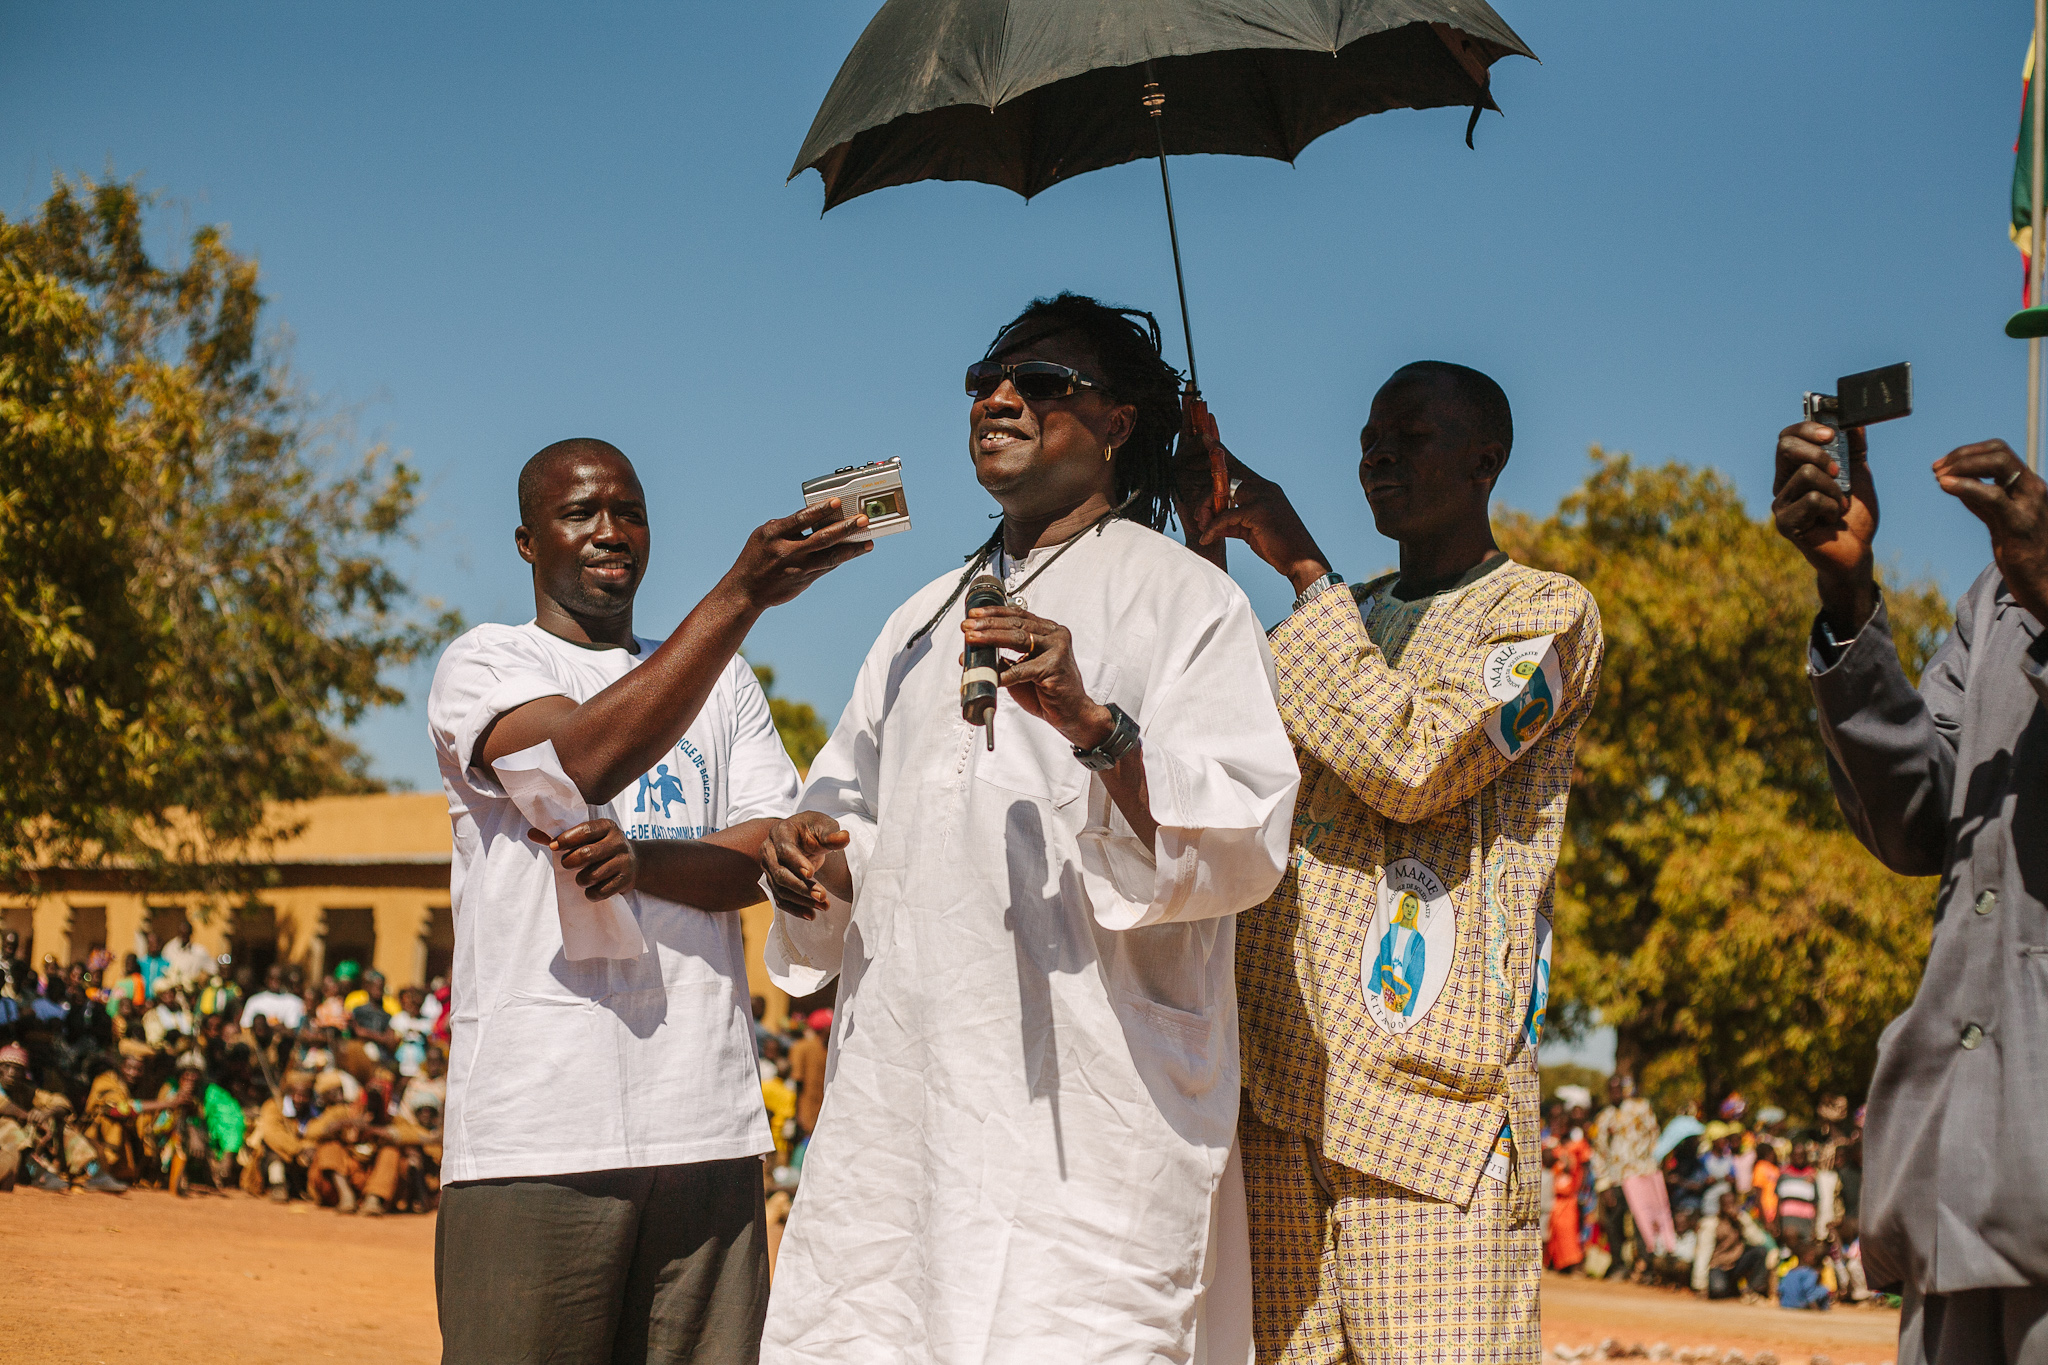 Habib Koité, one of Mali's most famous musicians, performs at the Beneko school dedication.